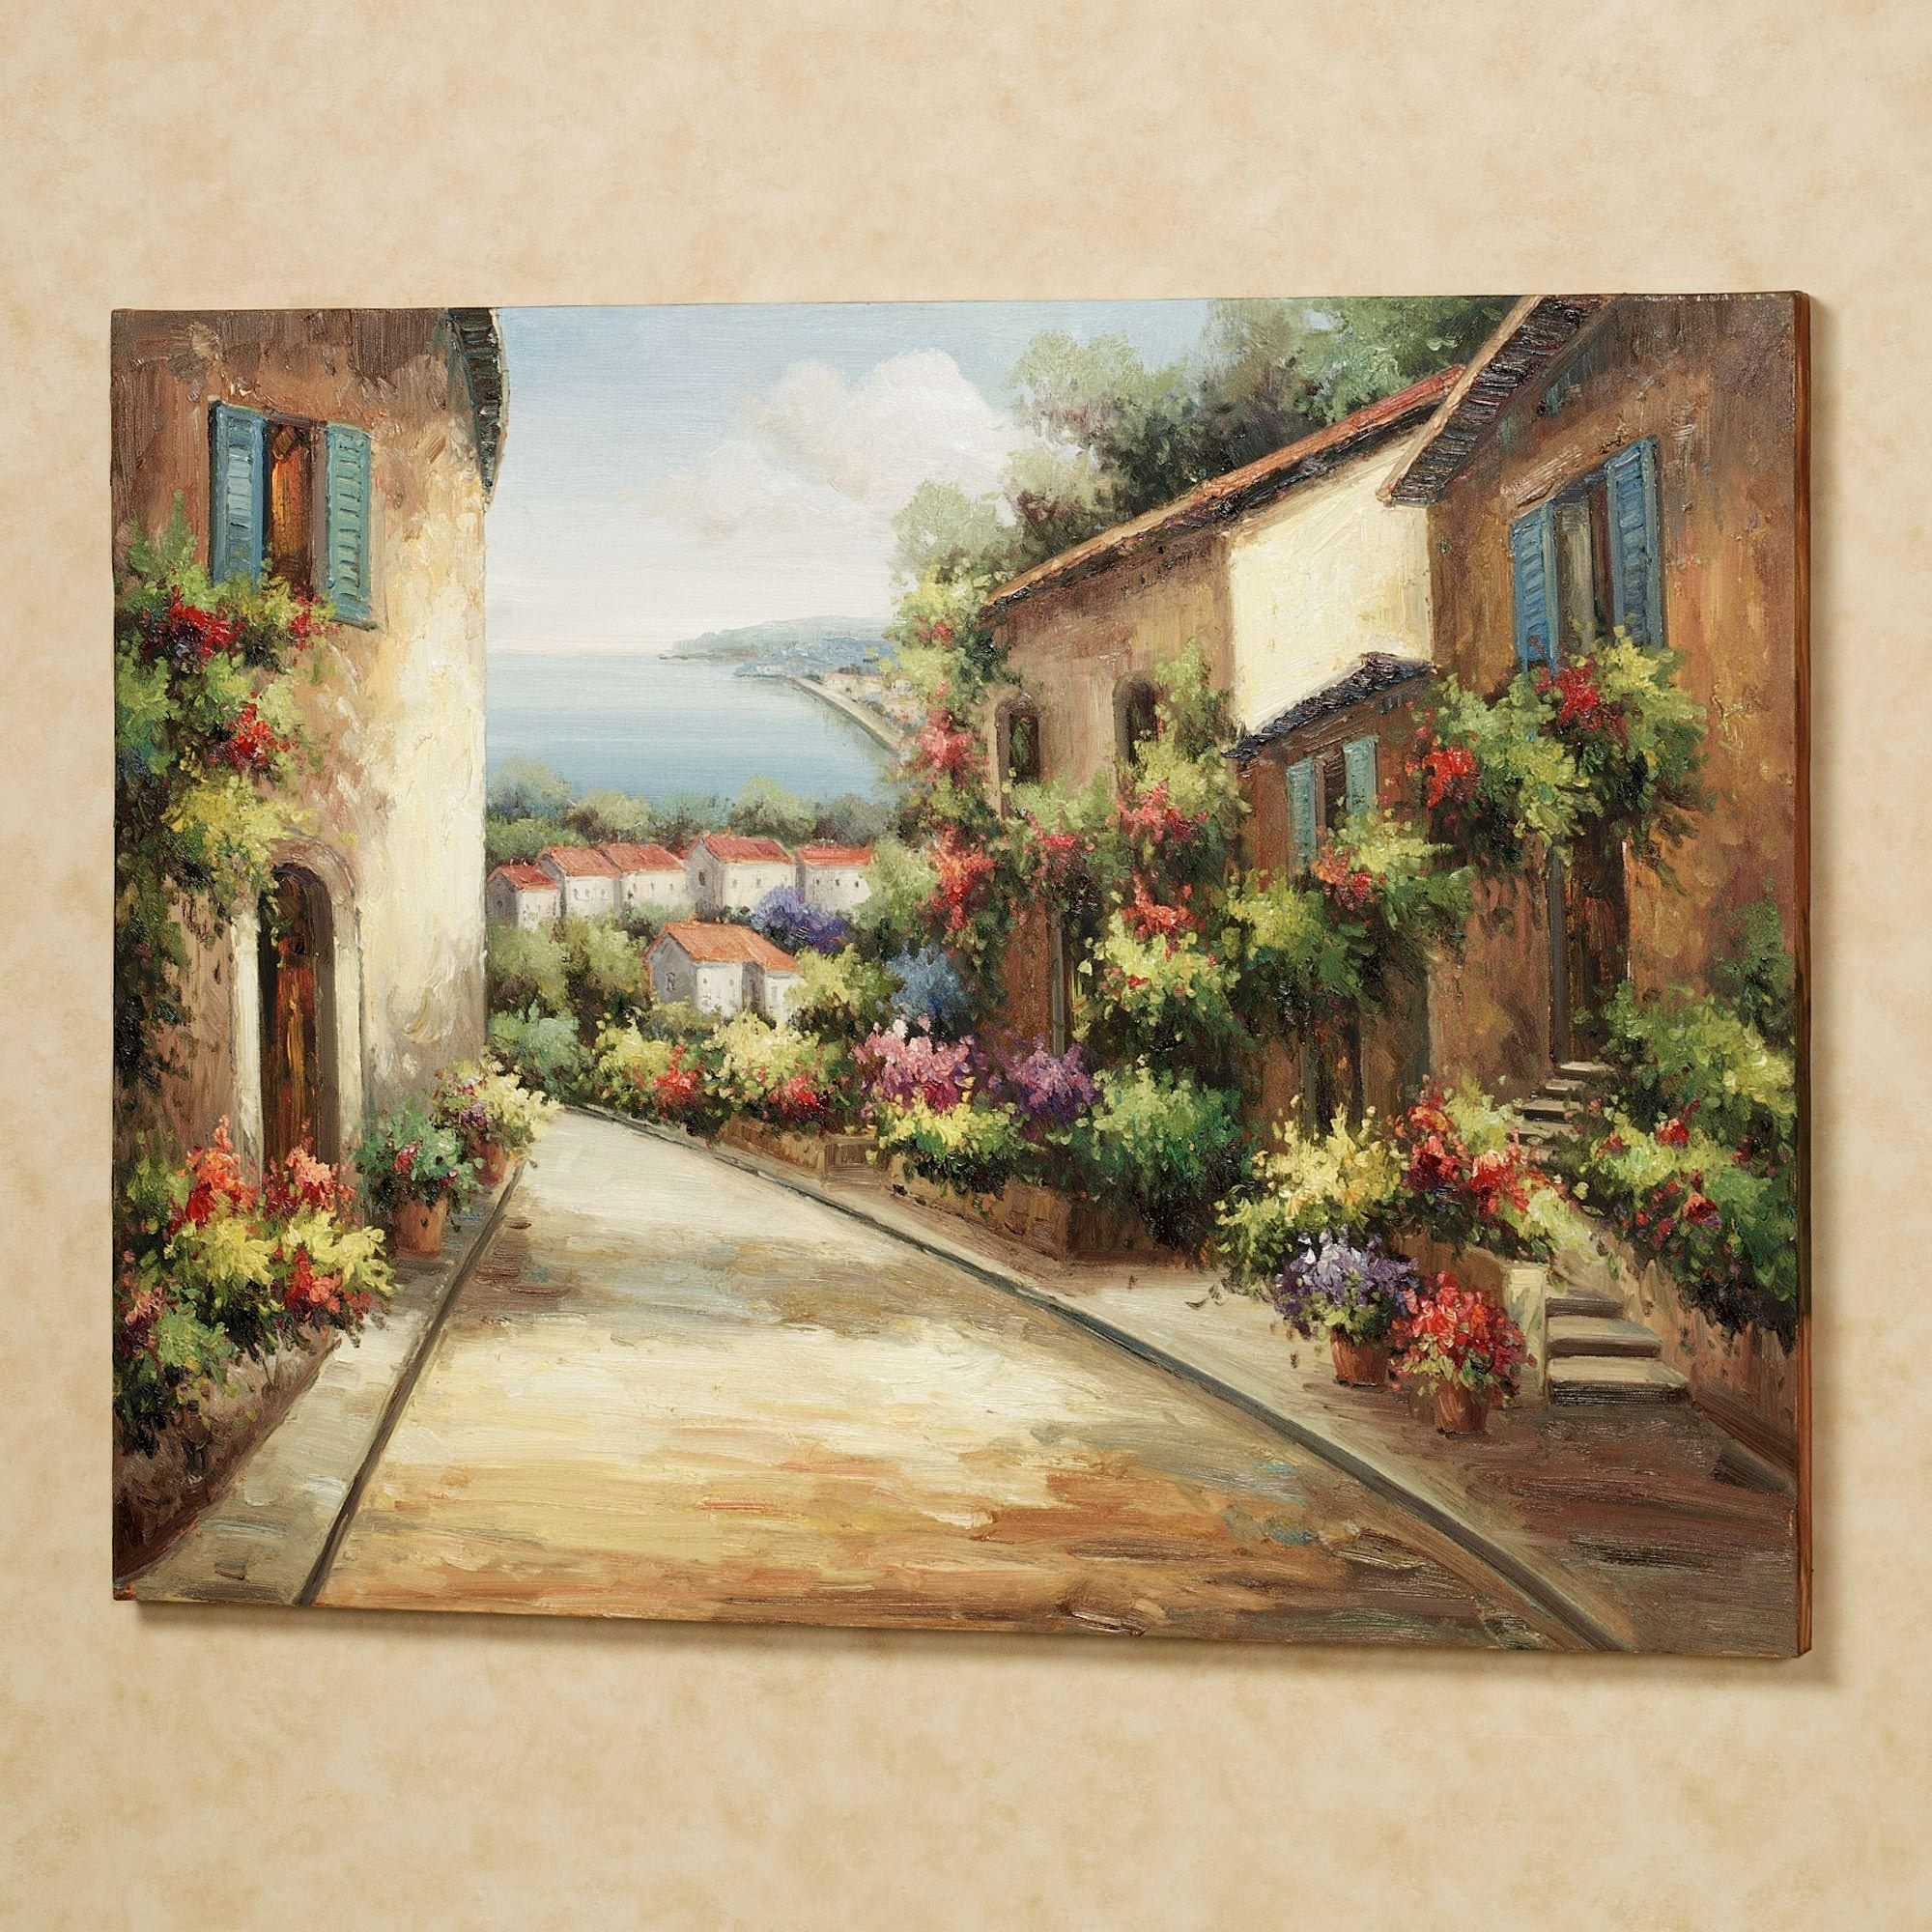 Streets Of Tuscany Canvas Wall Art For Tuscan Wall Art Decor (Image 6 of 20)